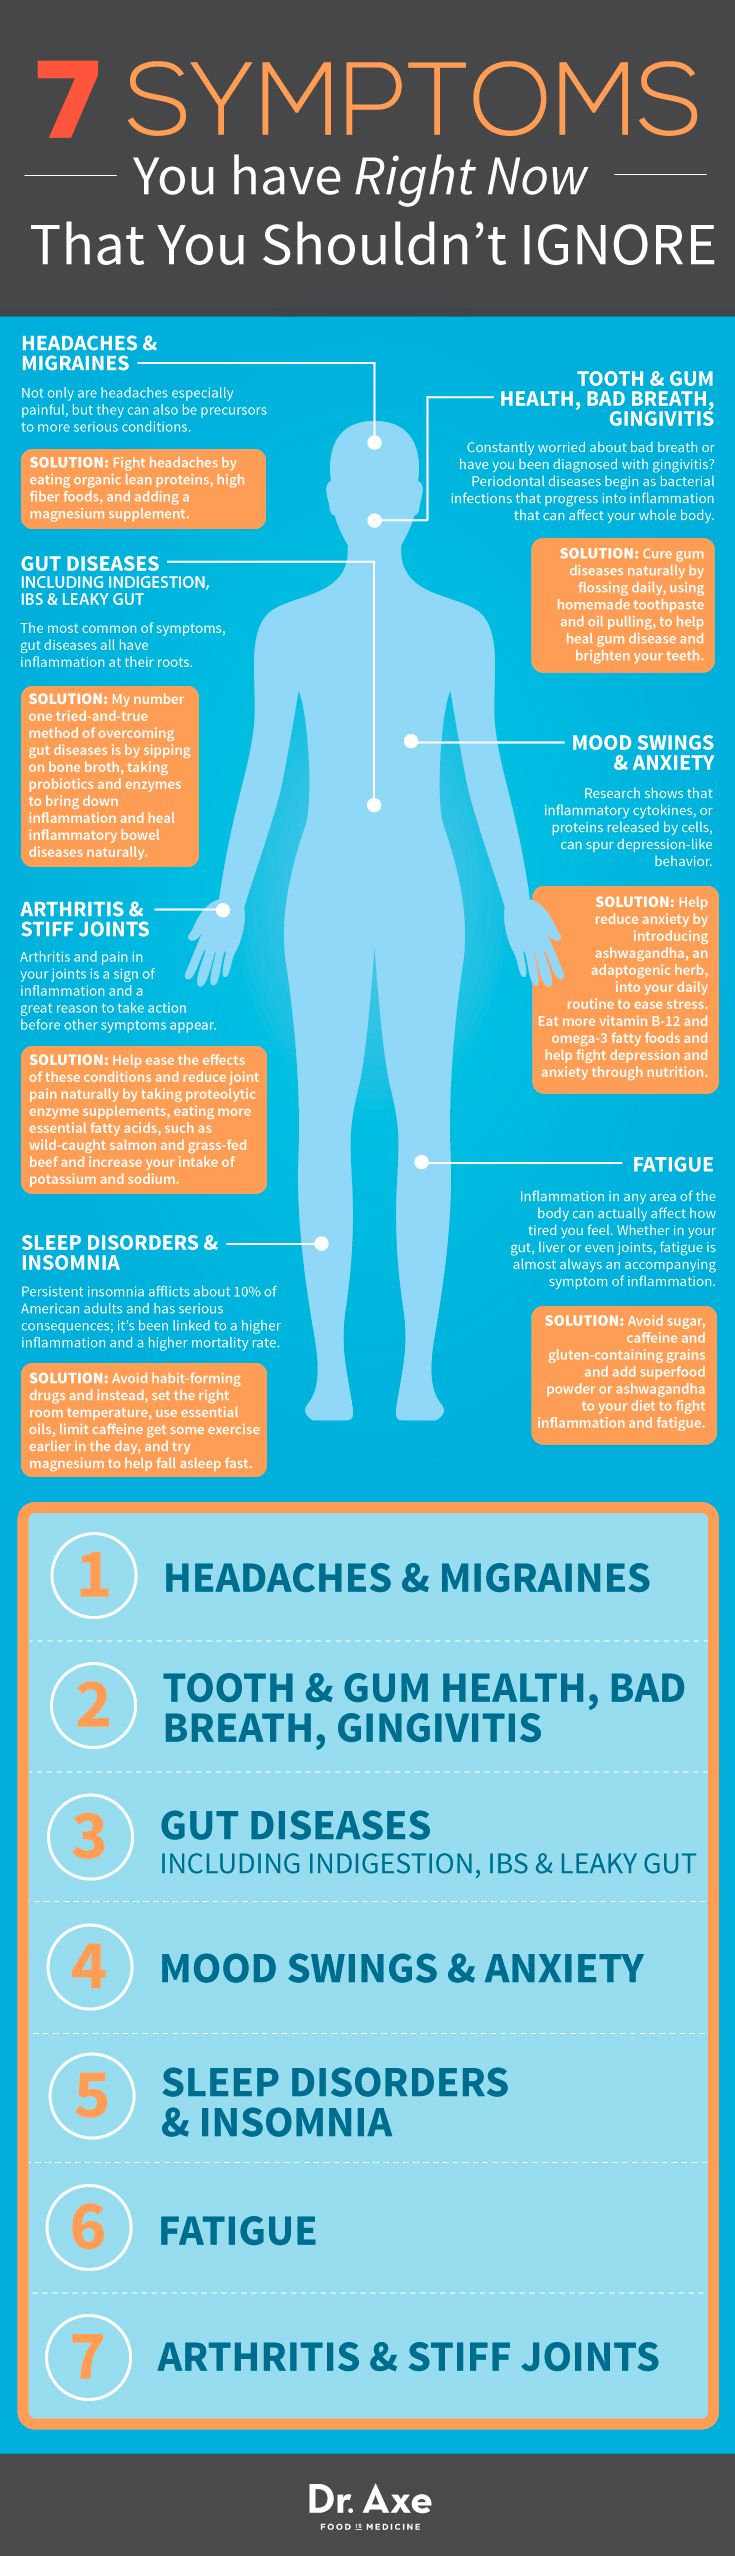 Symptoms you have right now that you should NOT ignore... http://www.draxe.com #health #holistic #natural